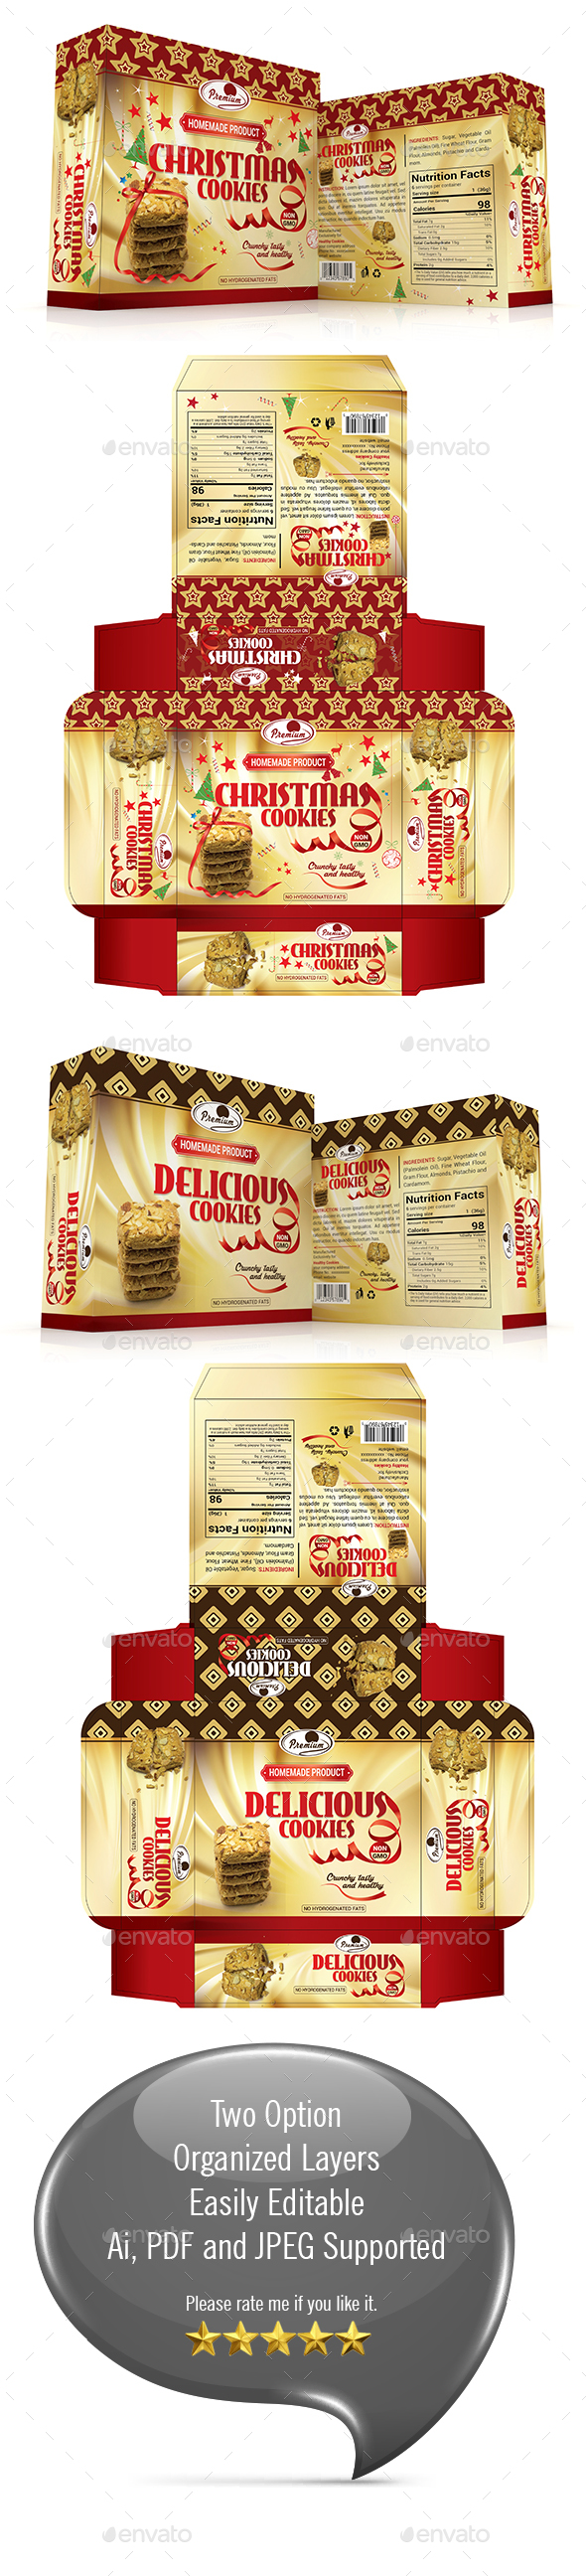 Cookies Gift Box Template - Packaging Print Templates